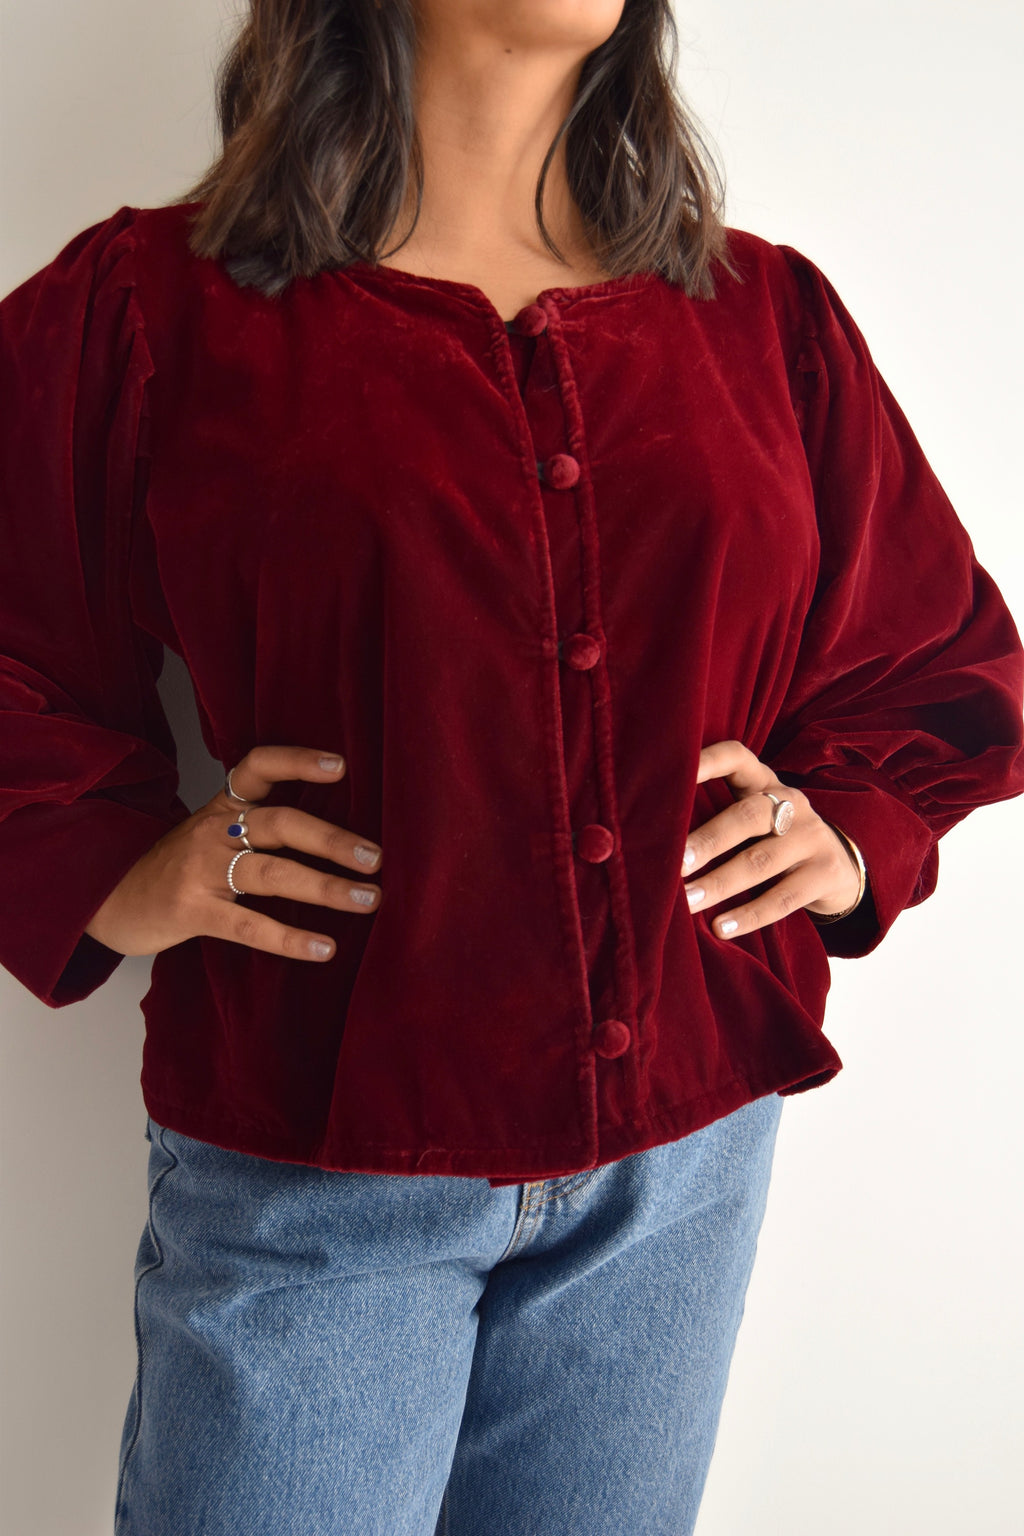 Velvet Beet Red Bishop Sleeve Top FREE SHIPPING TO THE U.S.